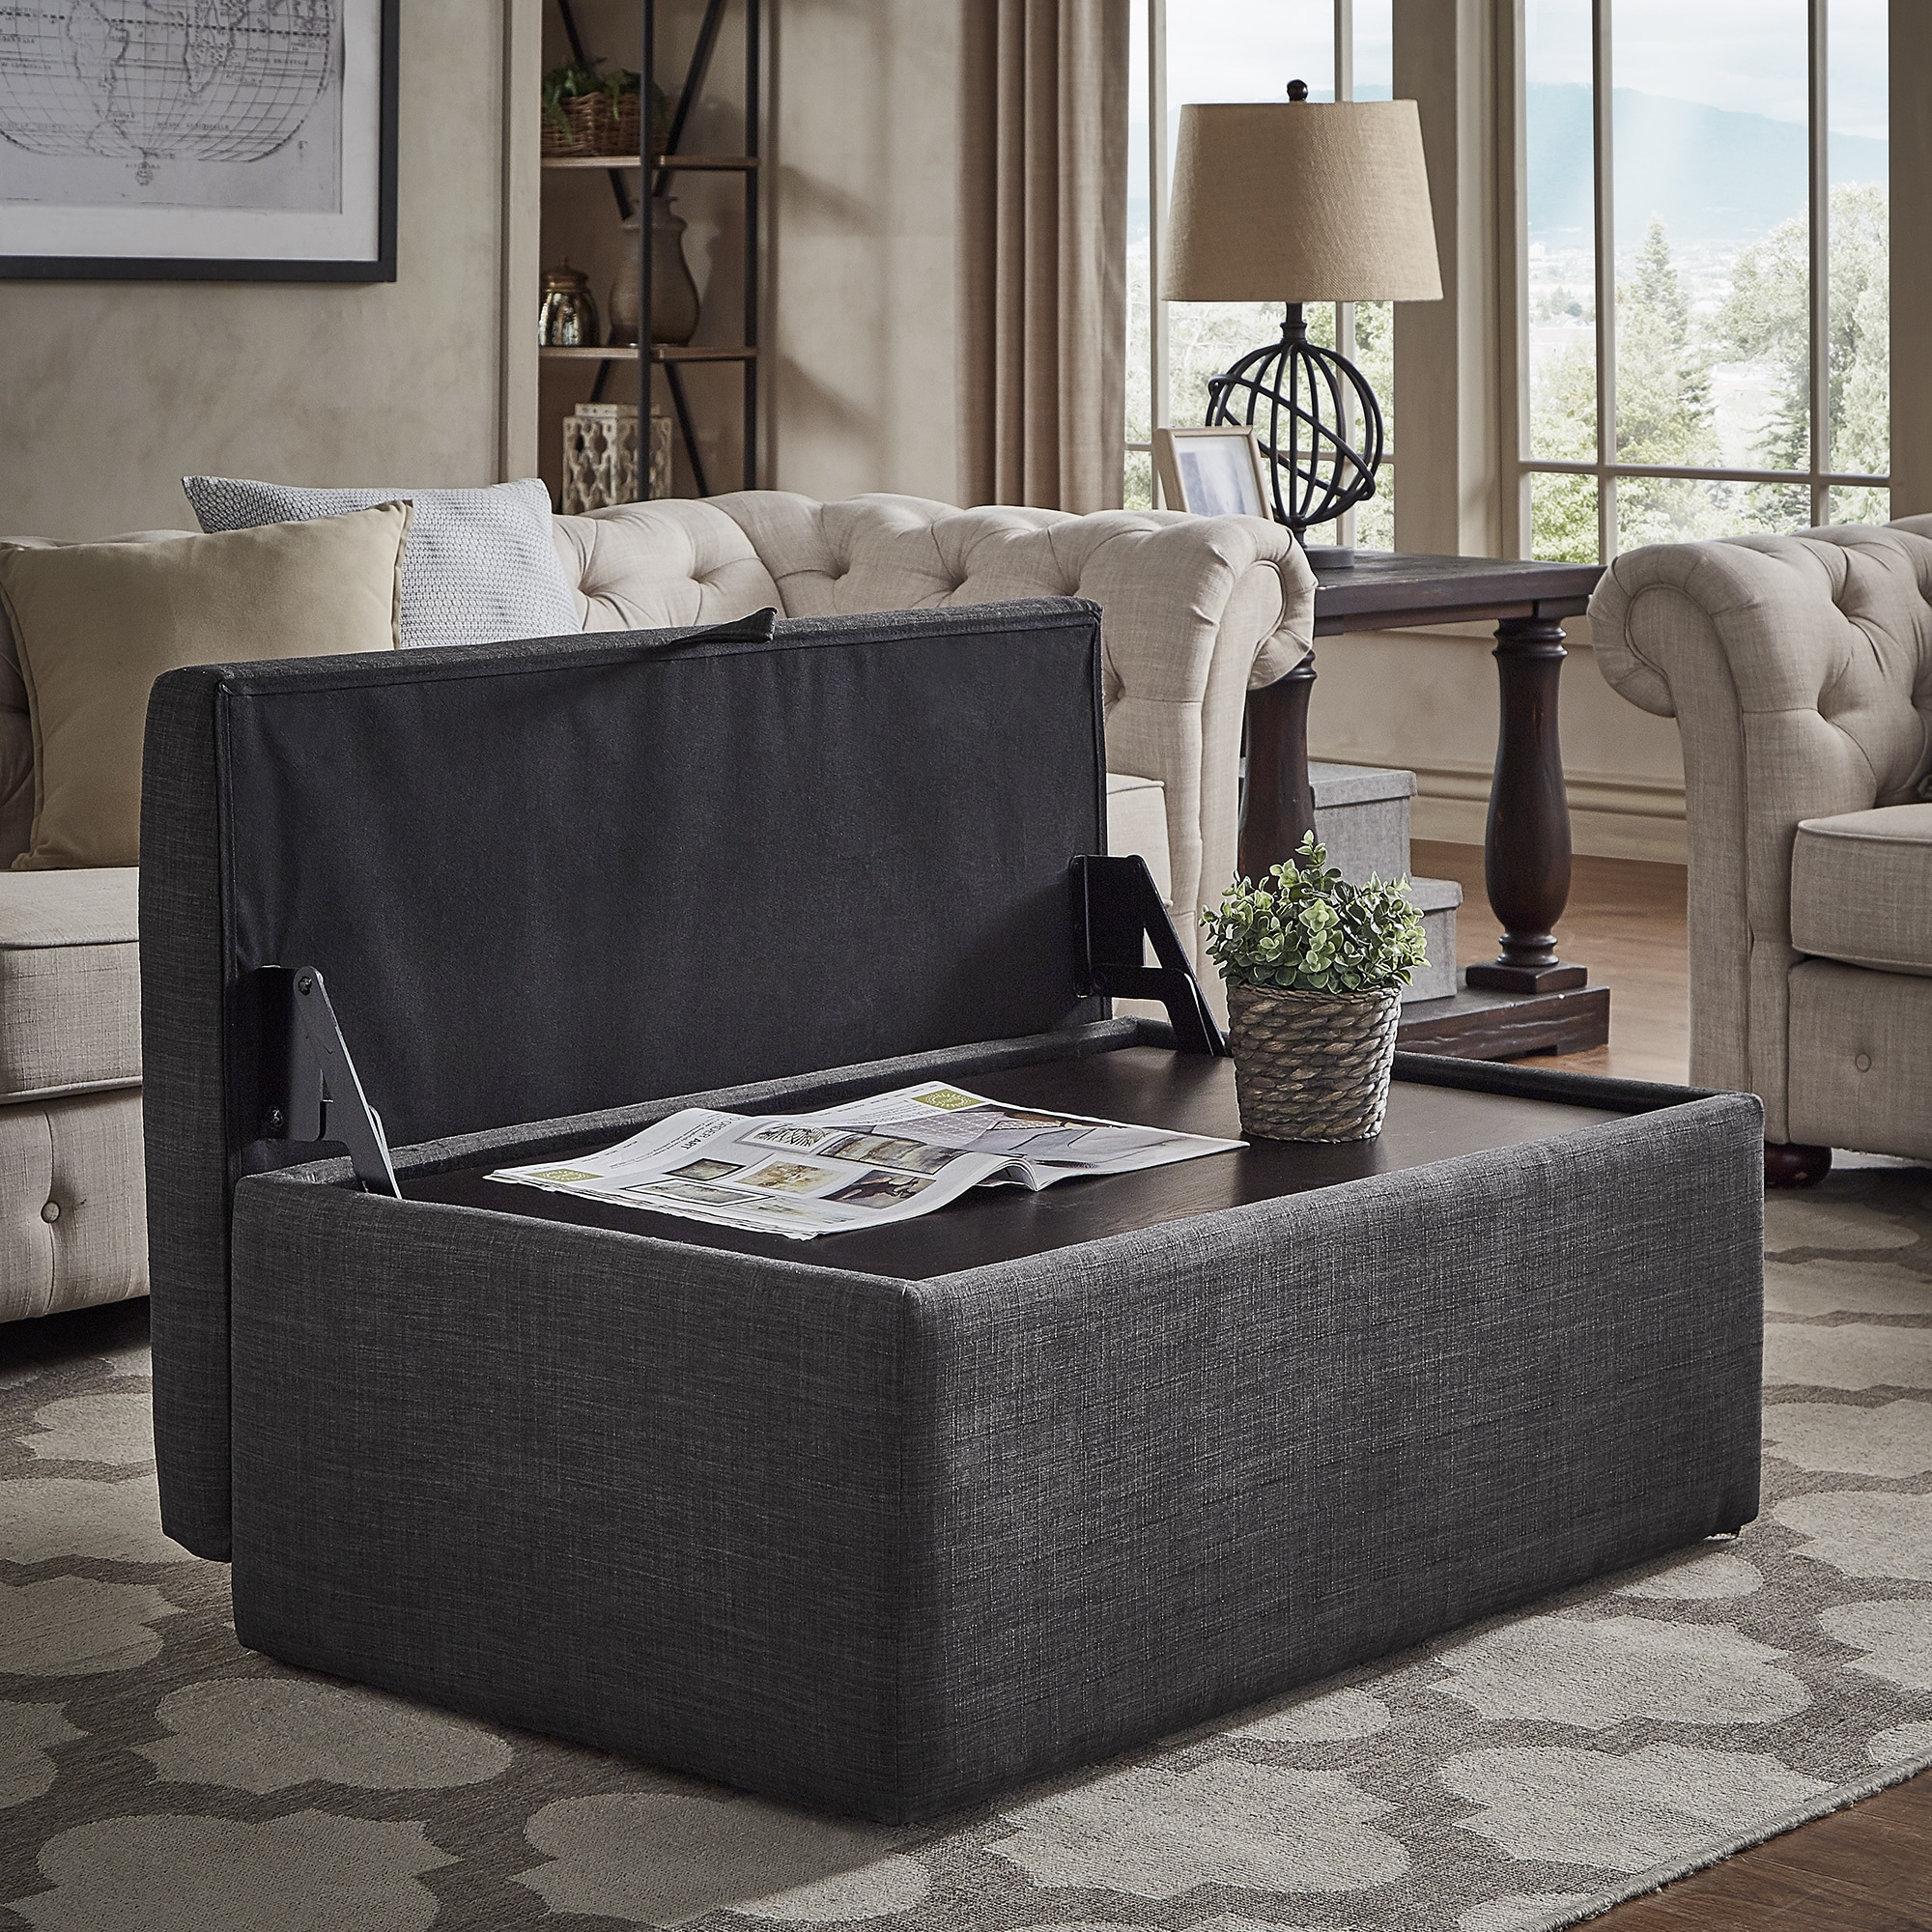 Upholstered Storage Ottoman Coffee Table